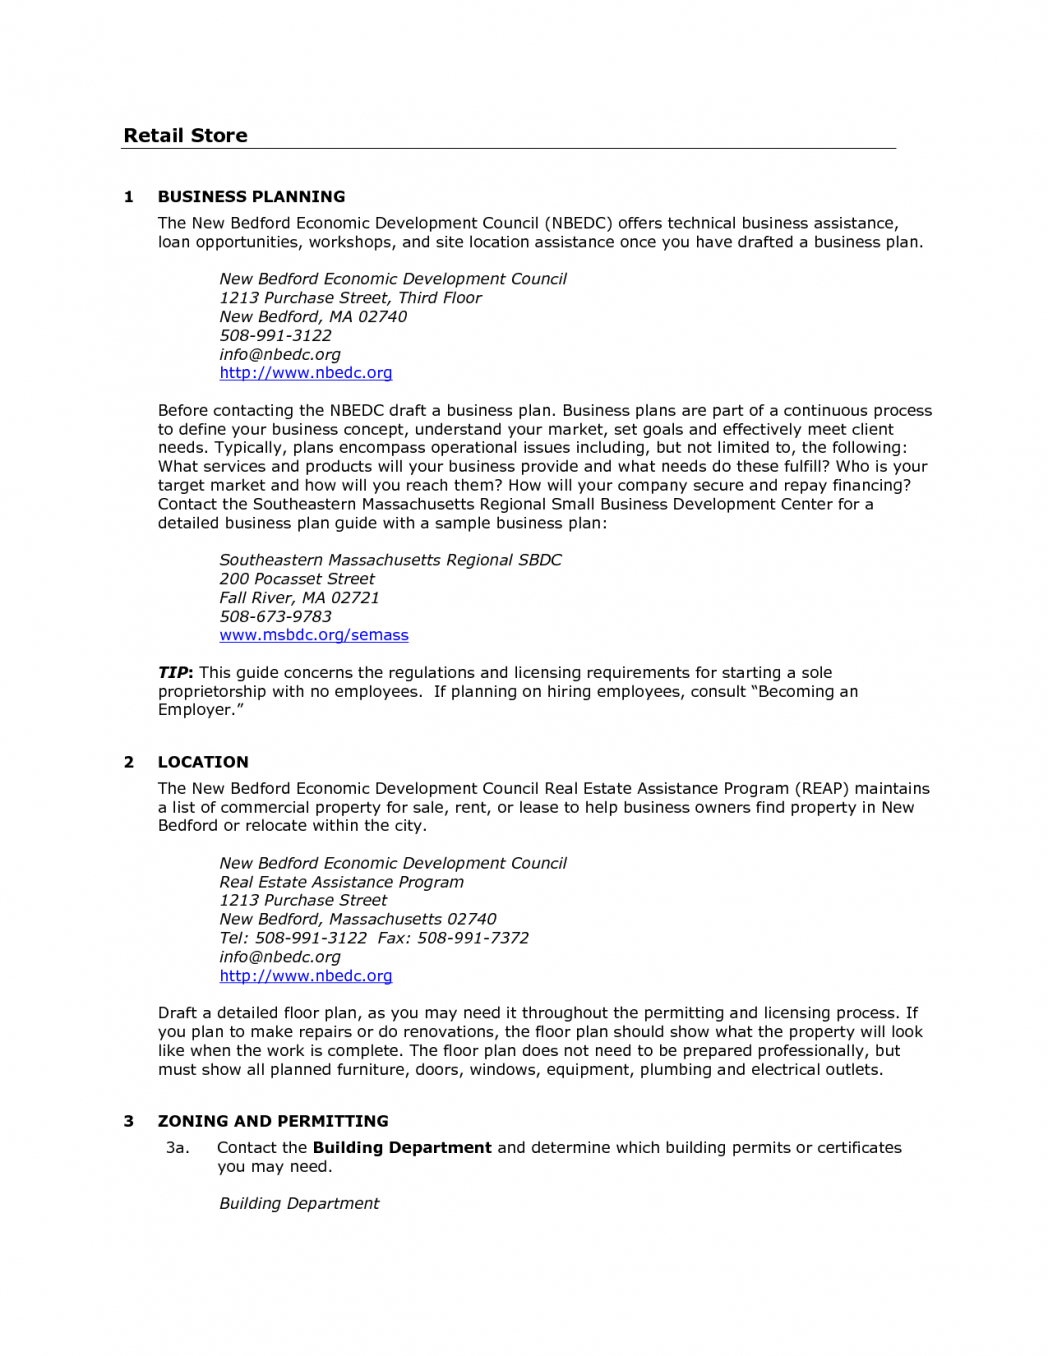 Business Plan Template Retail Rottenraw With Regard To Relocation Inside Business Relocation Plan Template